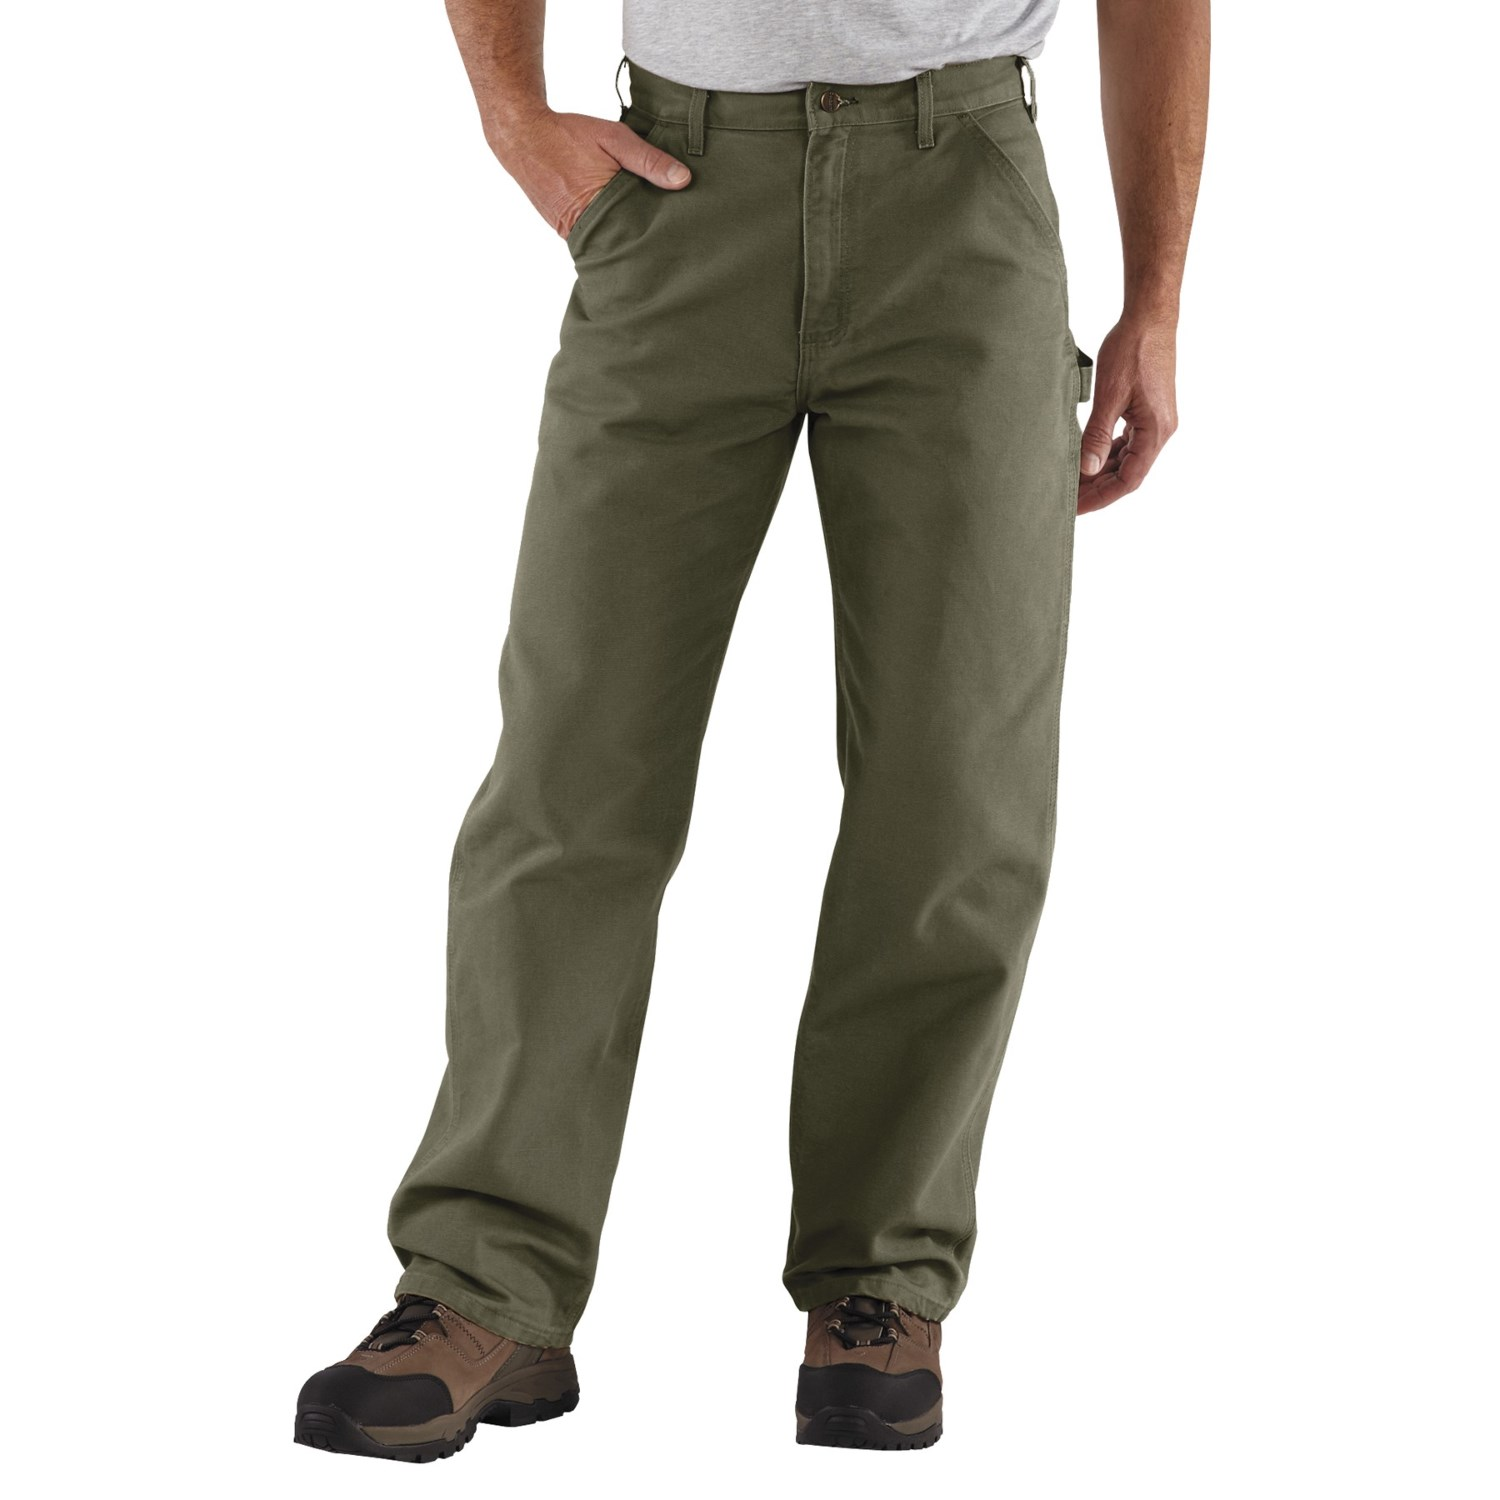 Find a huge selection of men's pants at Dickies from cargo pants to painter's pants. Our work pants for men offer durability, style and comfort all in one. Williamson-Dickie Mfg. Co.